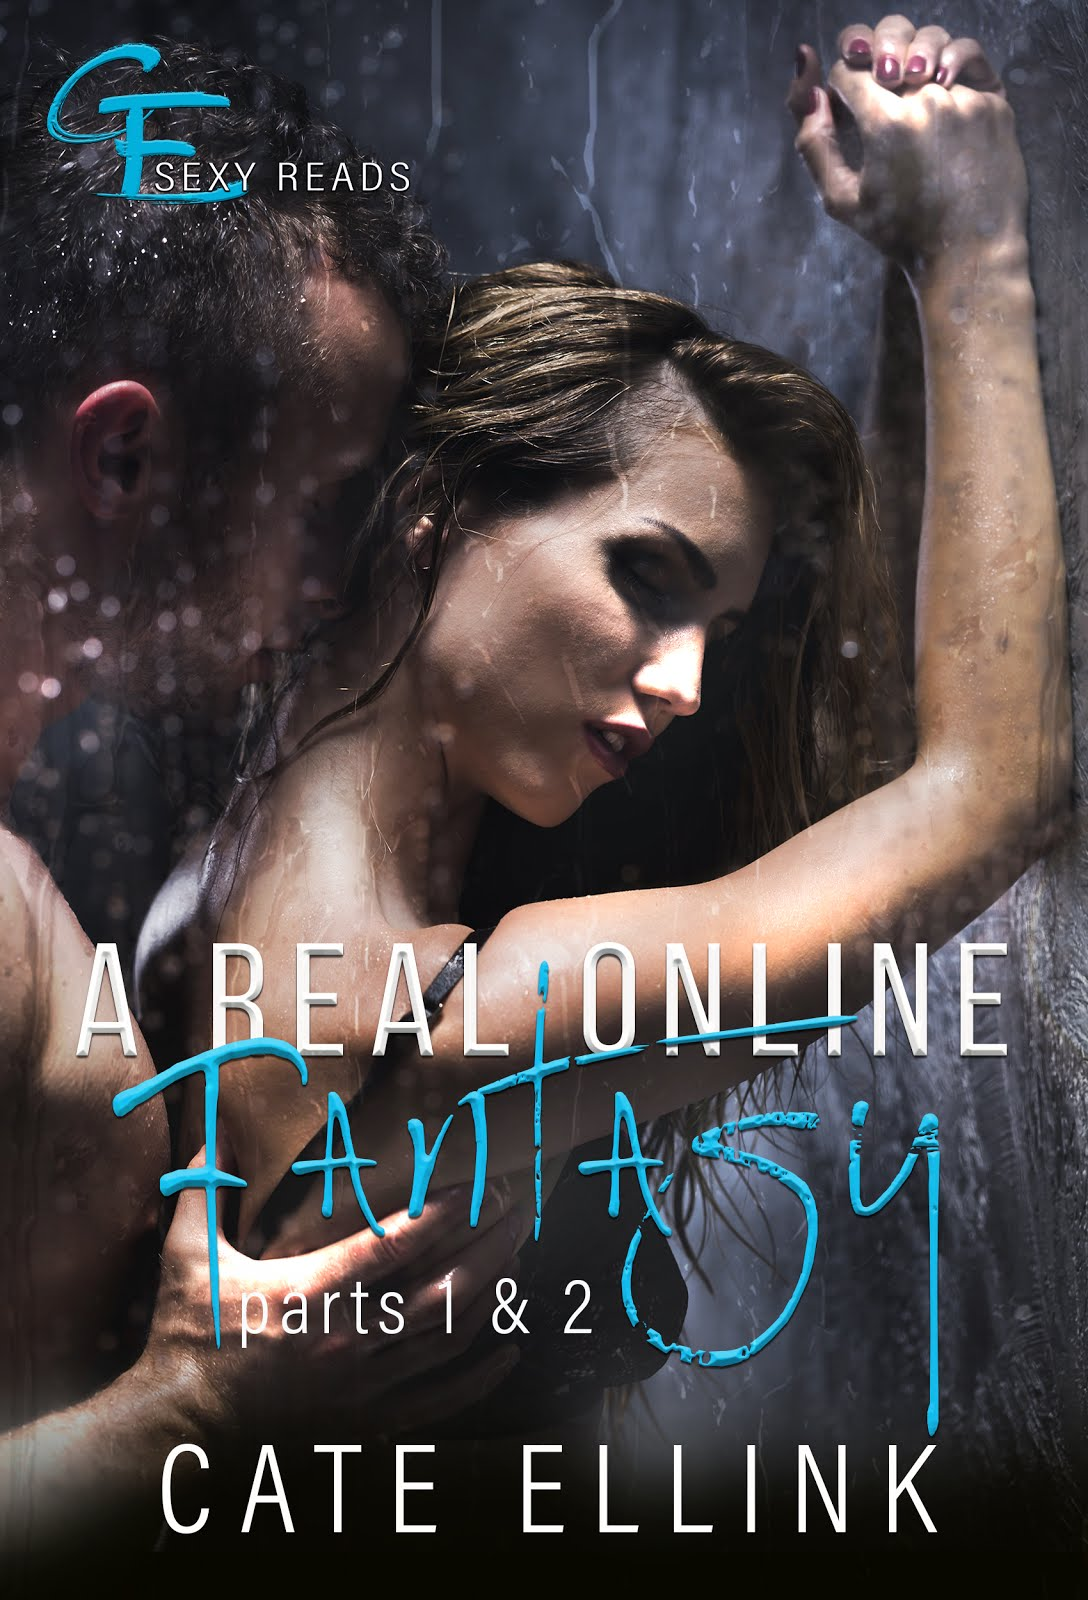 A Real Online Fantasy: Parts 1 & 2